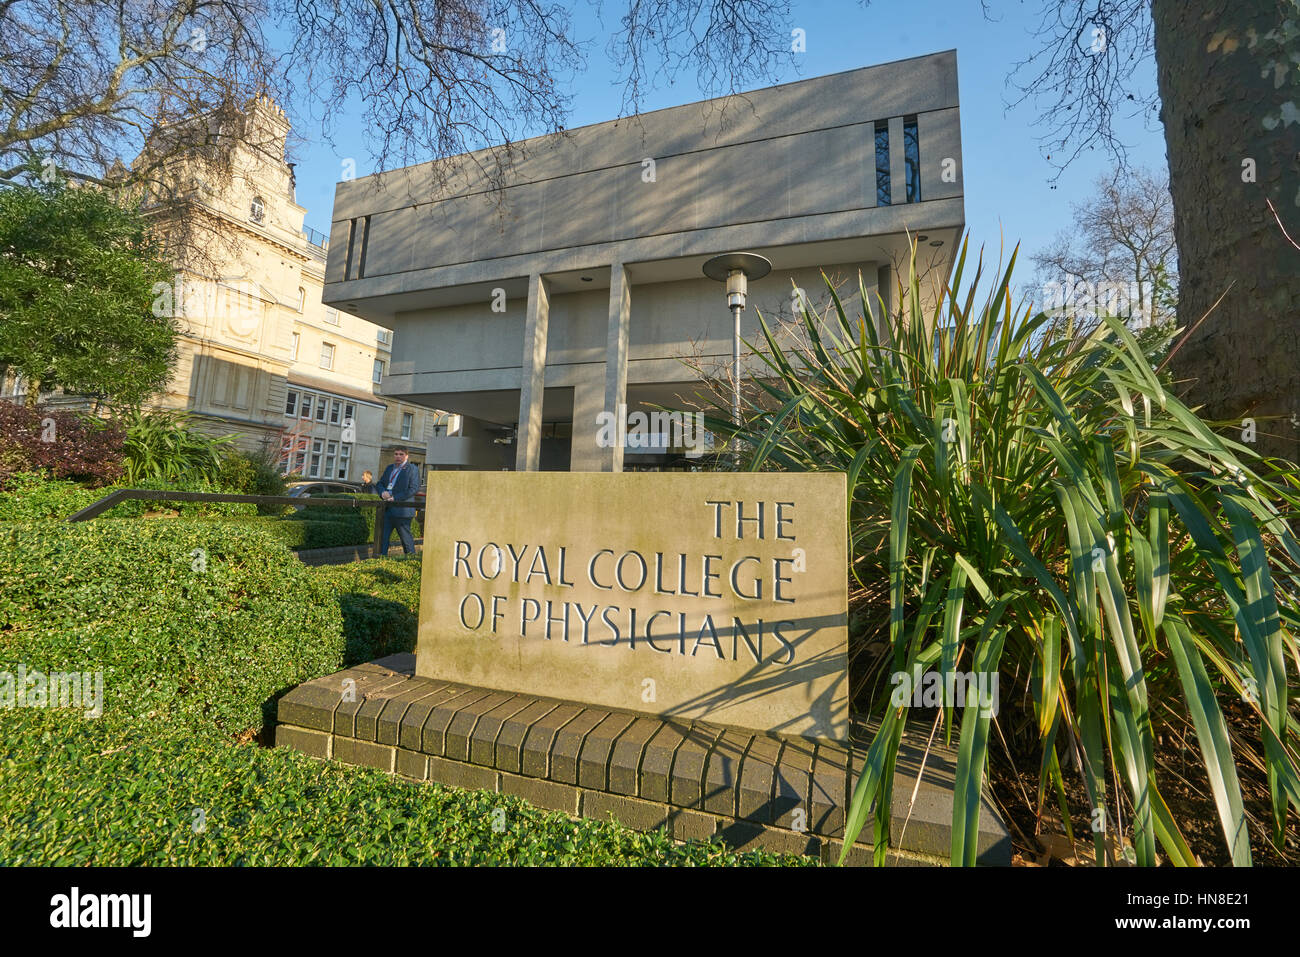 royal college of physicians - Stock Image